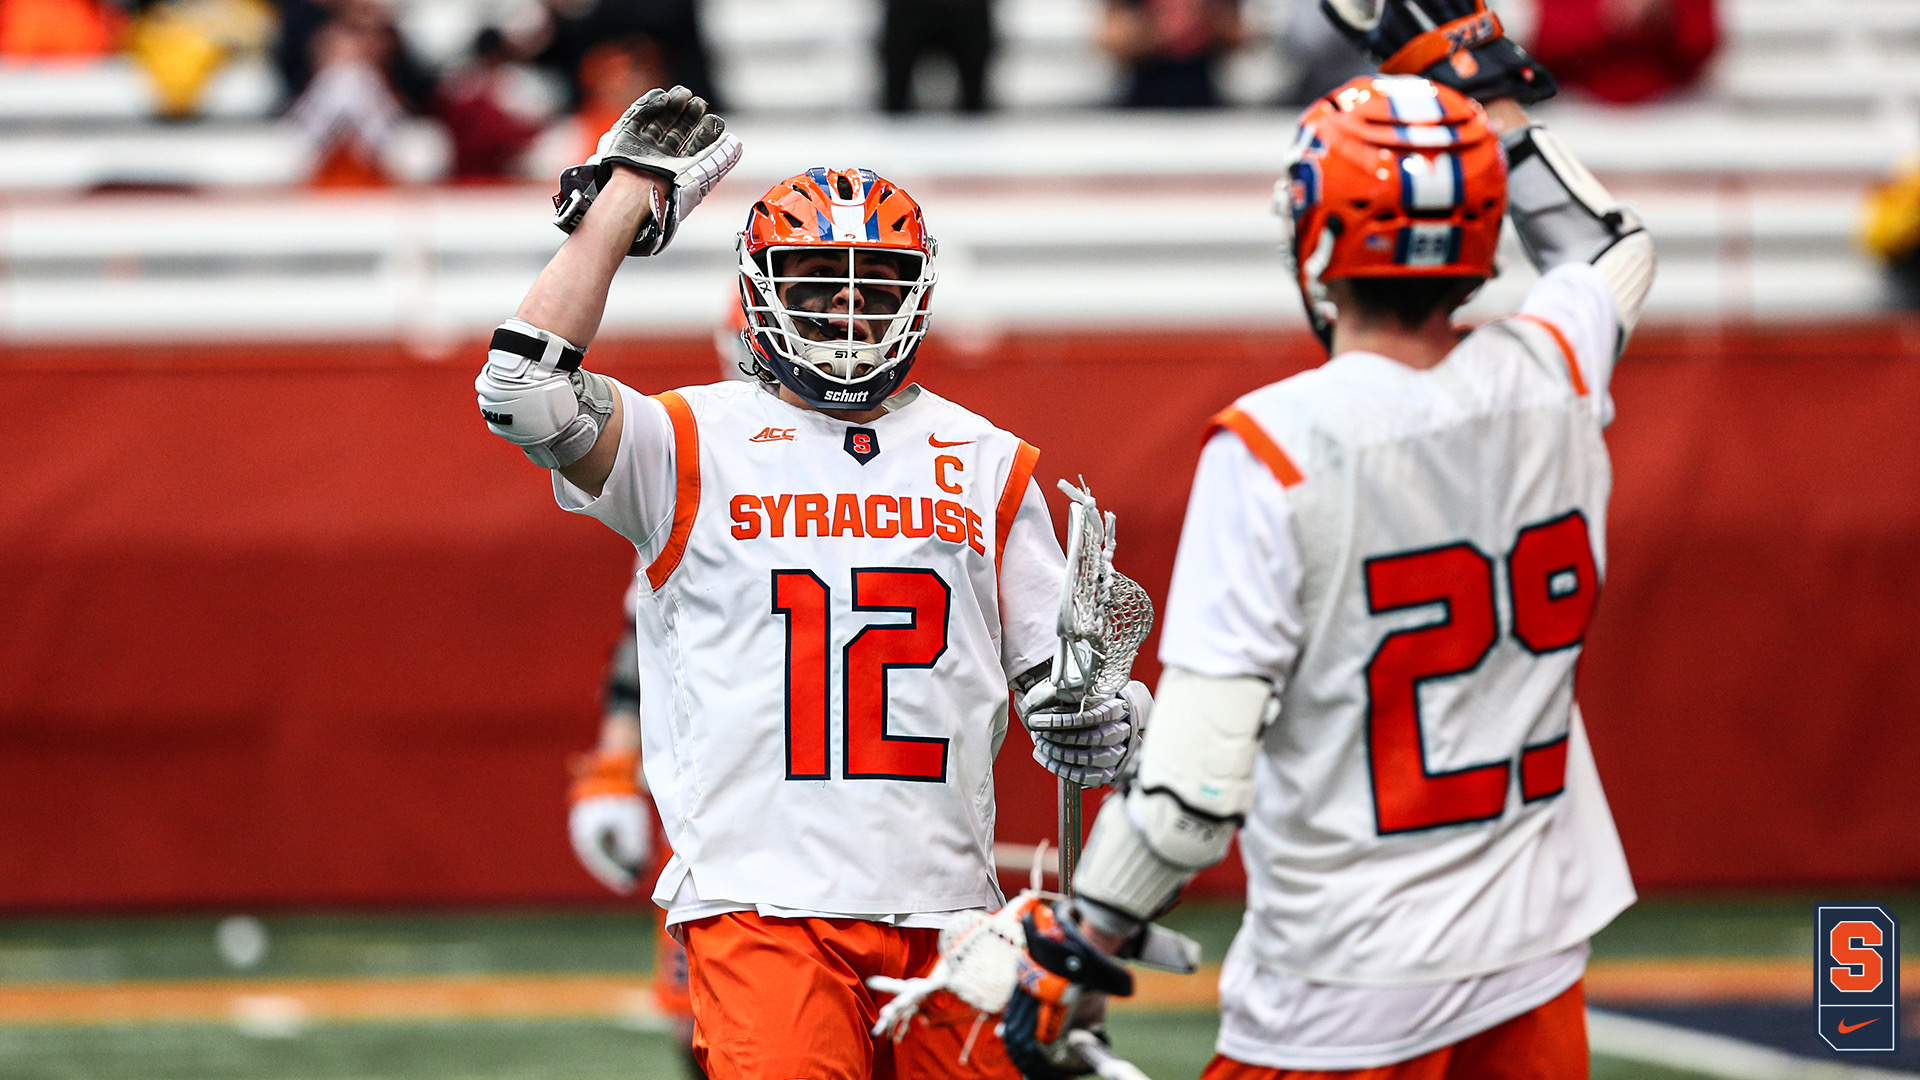 ORANGE GAME DAY: Syracuse men's lacrosse takes on Binghamton this afternoon (preview & info)